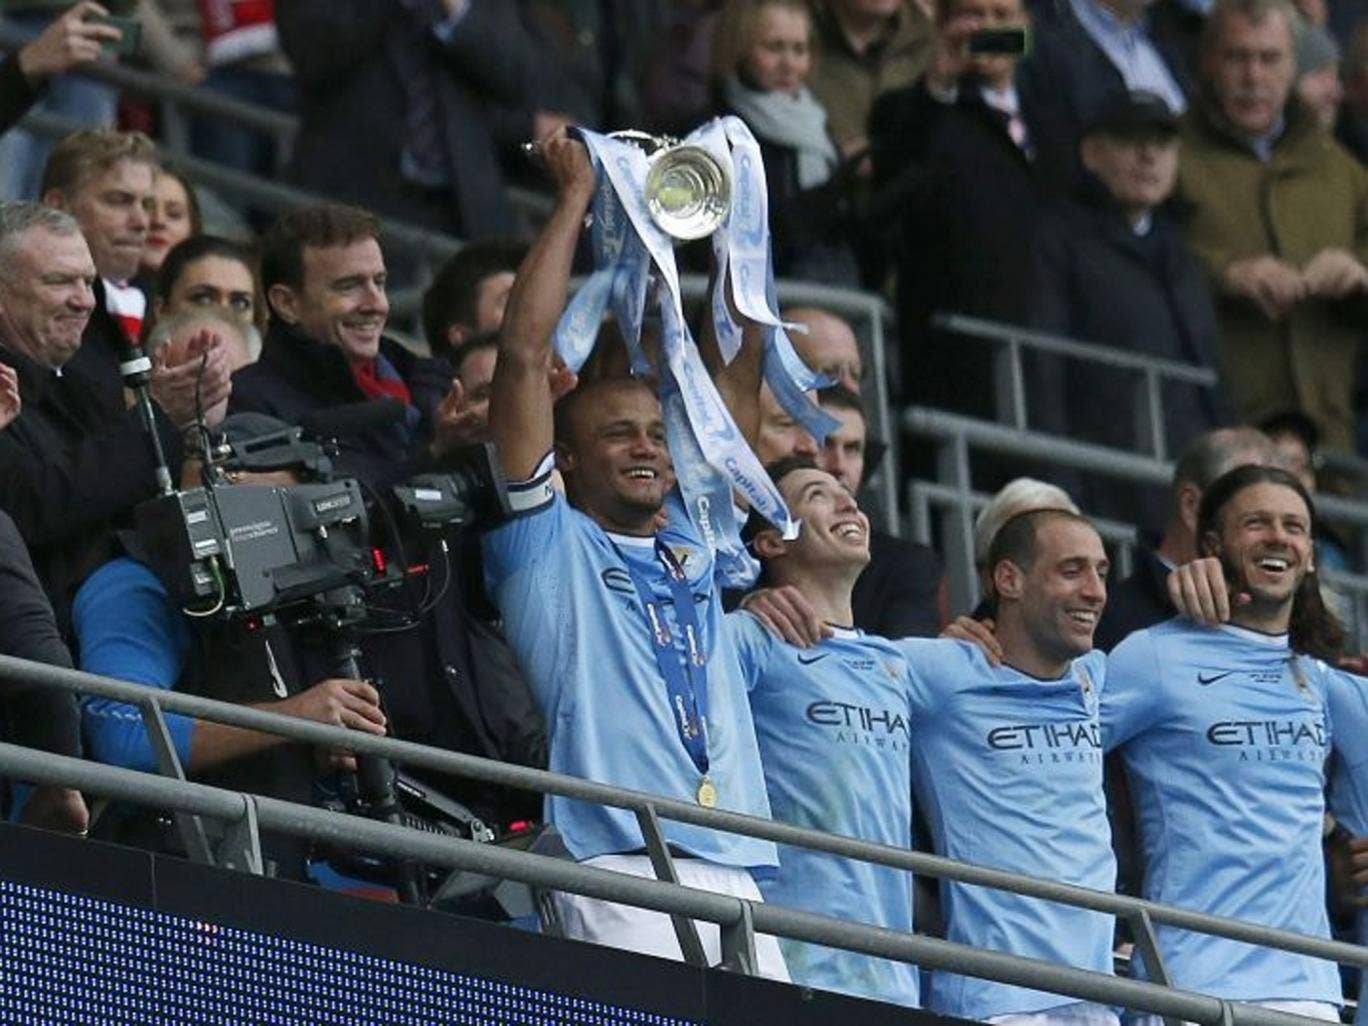 Manchester City captain Vincent Kompany holds aloft the trophy after defeating Sunderland to win the English League Cup final match at Wembley Stadium (Reuters)